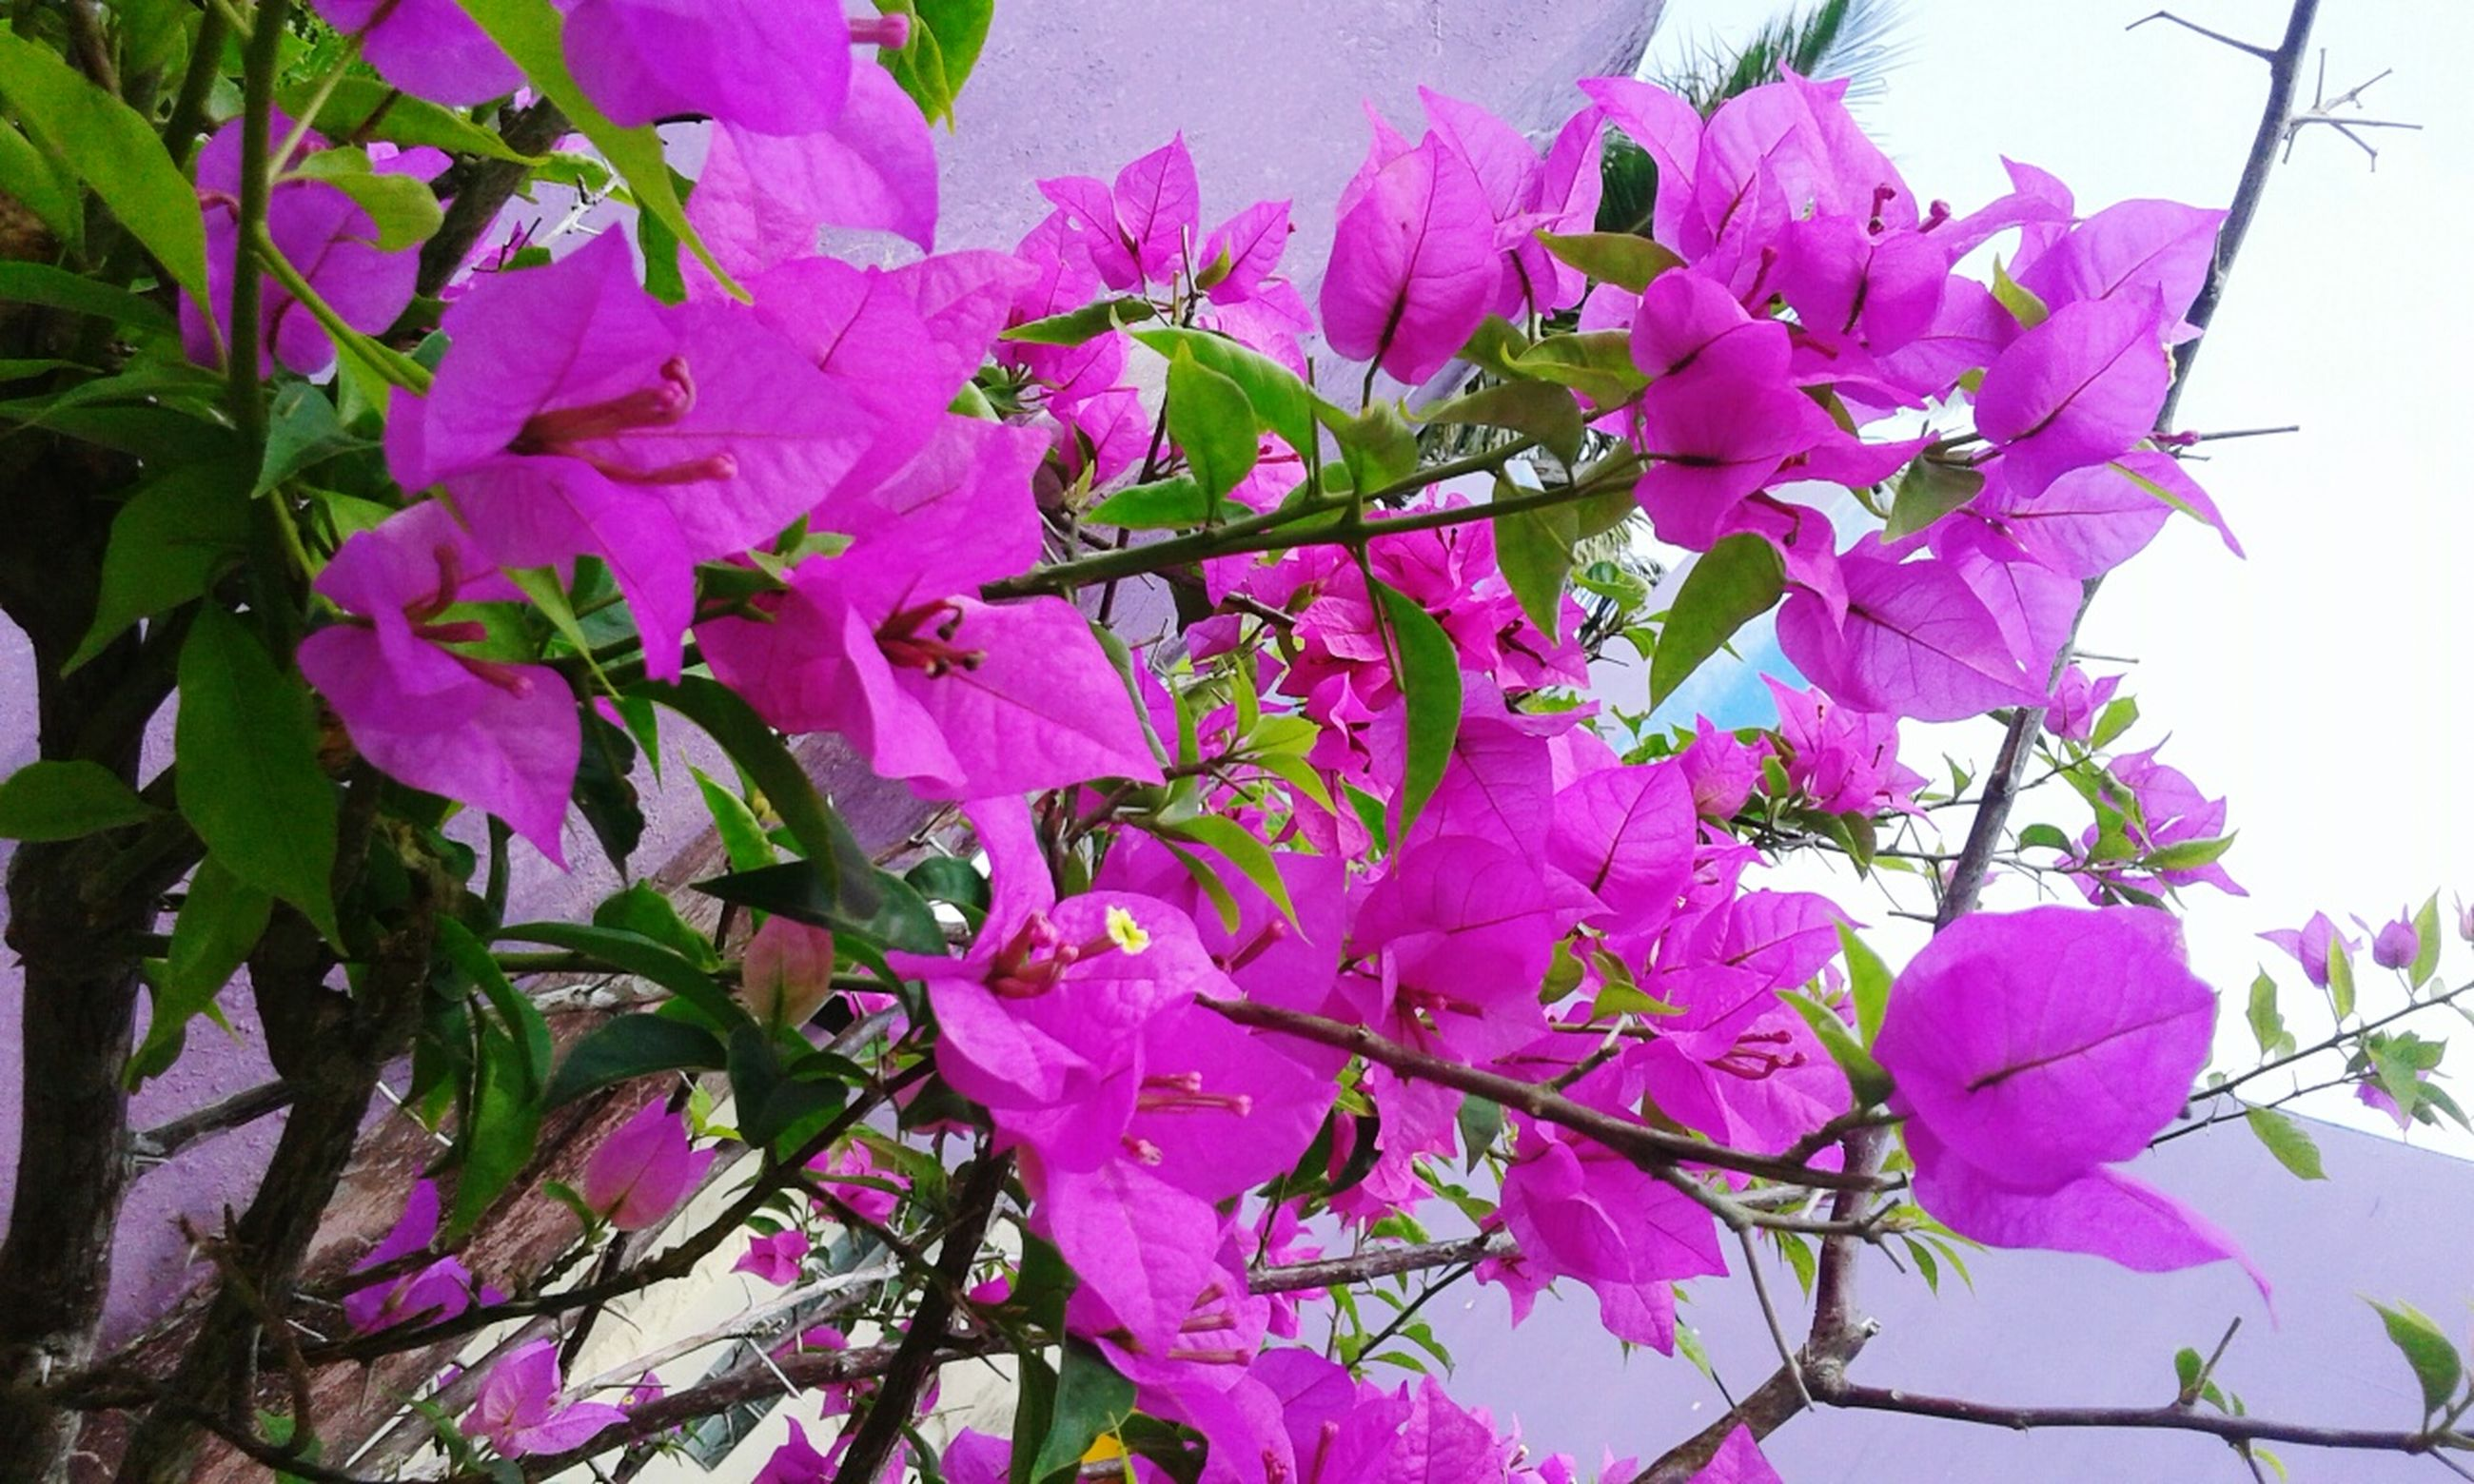 flower, freshness, fragility, petal, growth, beauty in nature, pink color, blooming, nature, flower head, plant, purple, leaf, close-up, in bloom, stem, blossom, day, no people, outdoors